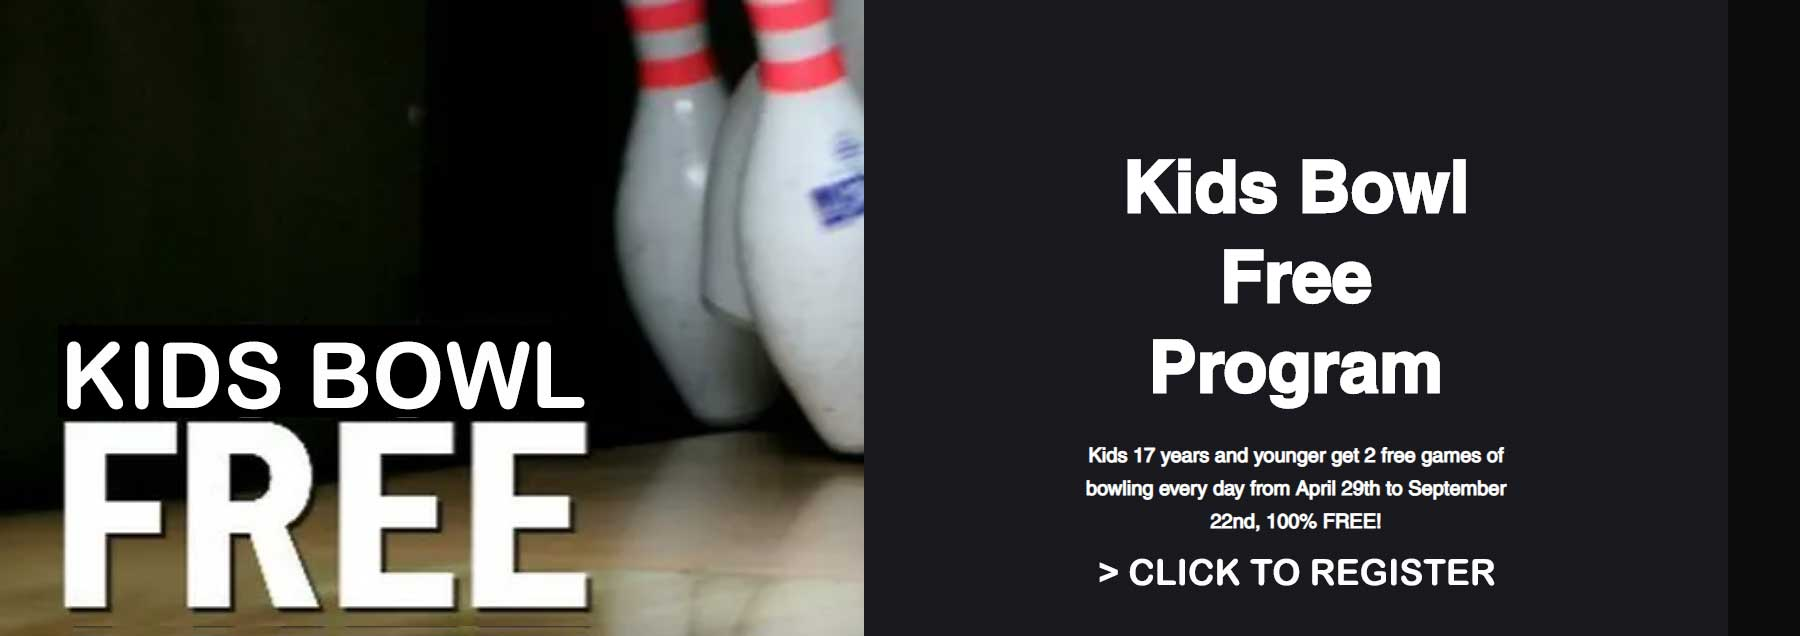 Kids Bowl Free - Food, Fun, Bowling, Laser Tag, Arcade